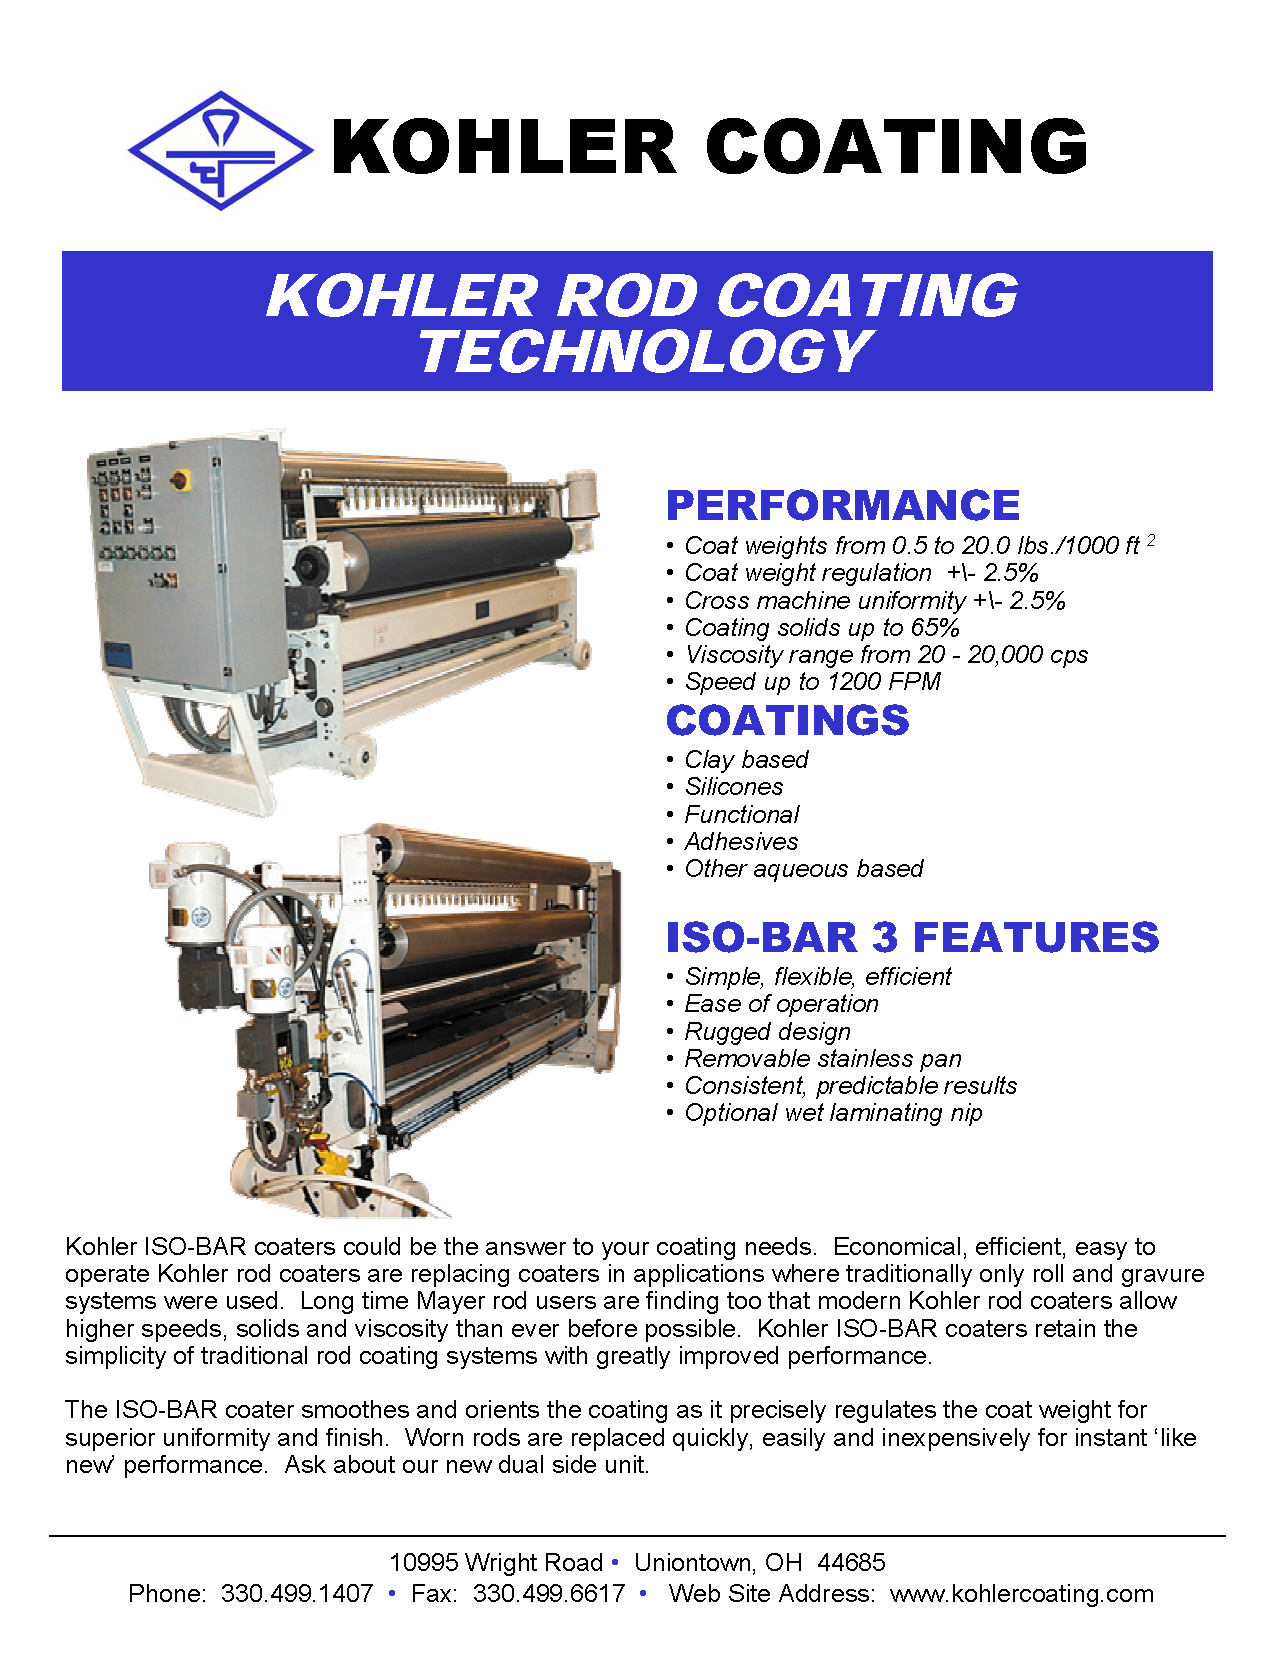 Learn more by viewing the Kohler Coating Rod Coating Technology Brochure.